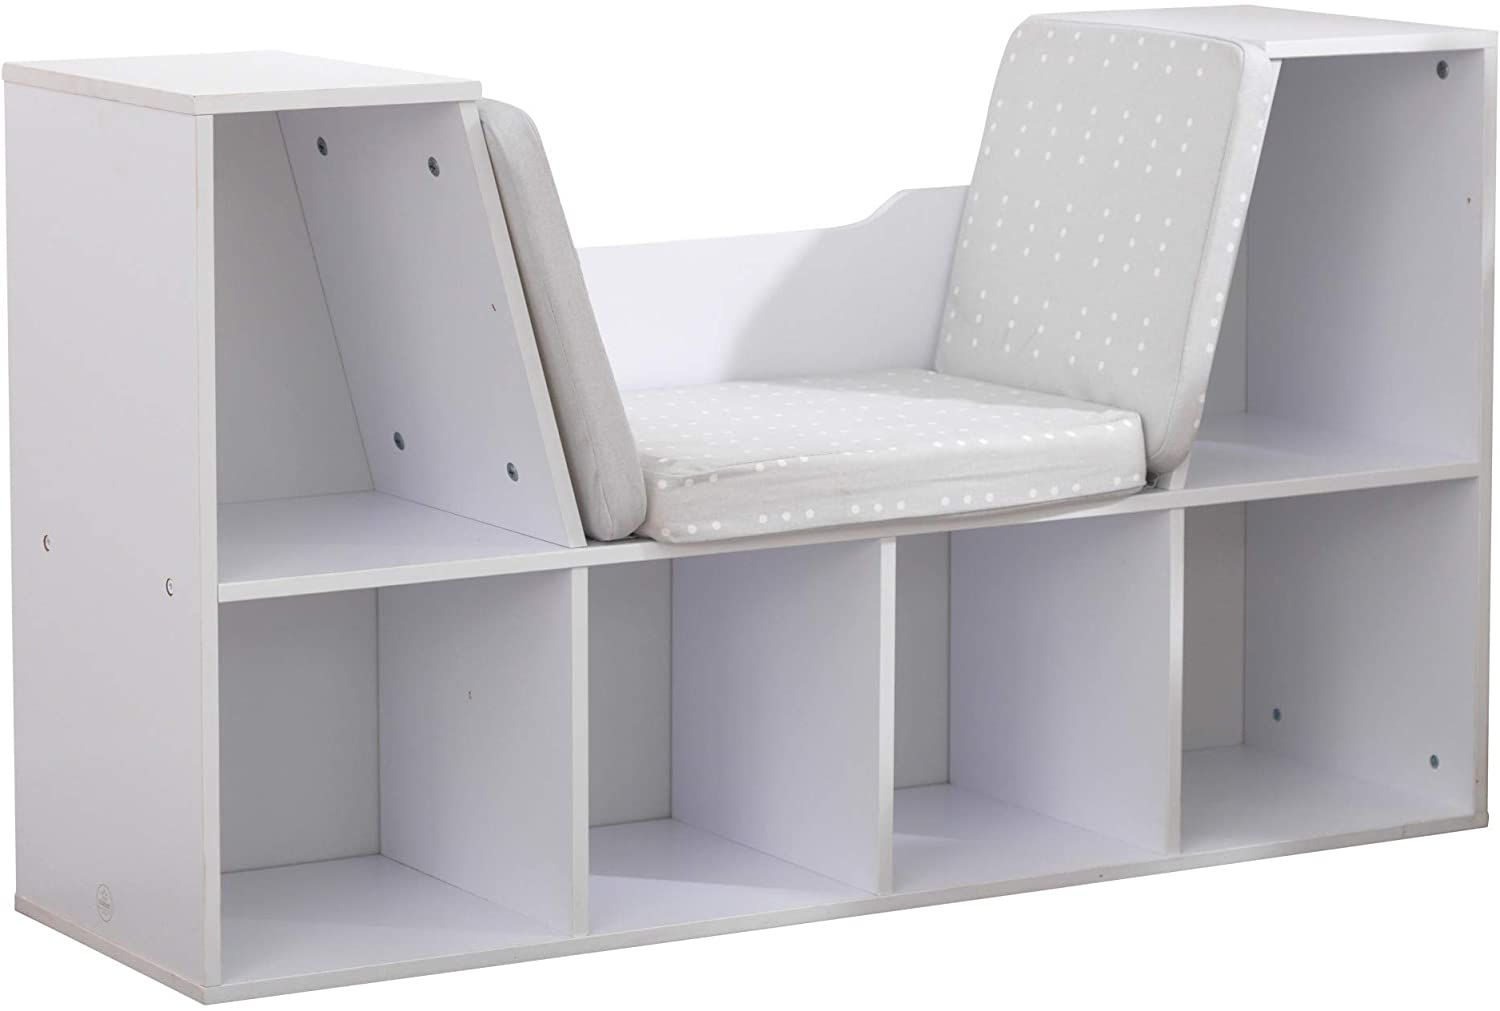 KidKraft Children's Bookcase with Reading Nook and Cushion